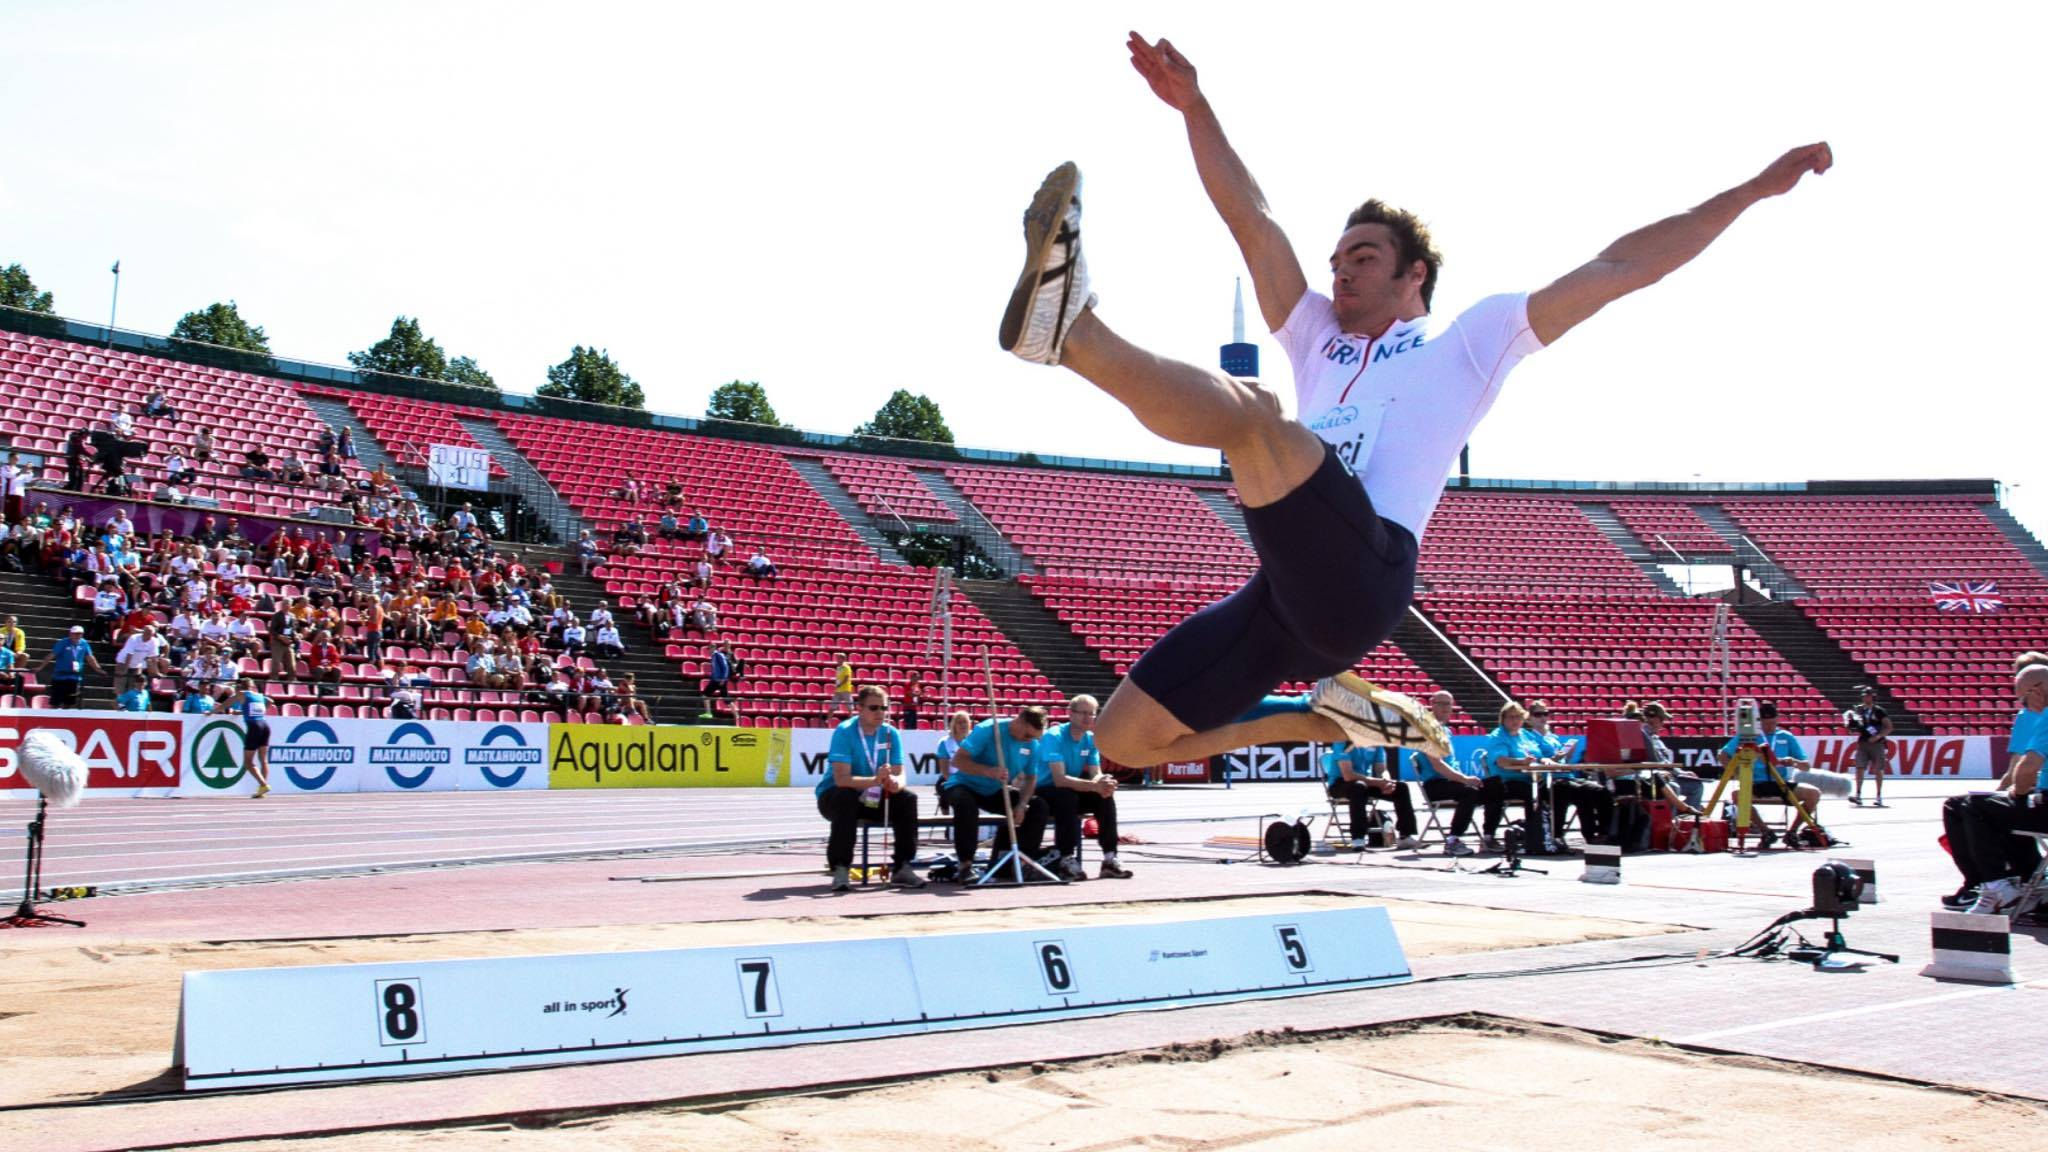 U23 European Championship in Tampere (FIN) in 2013 - Long Jump